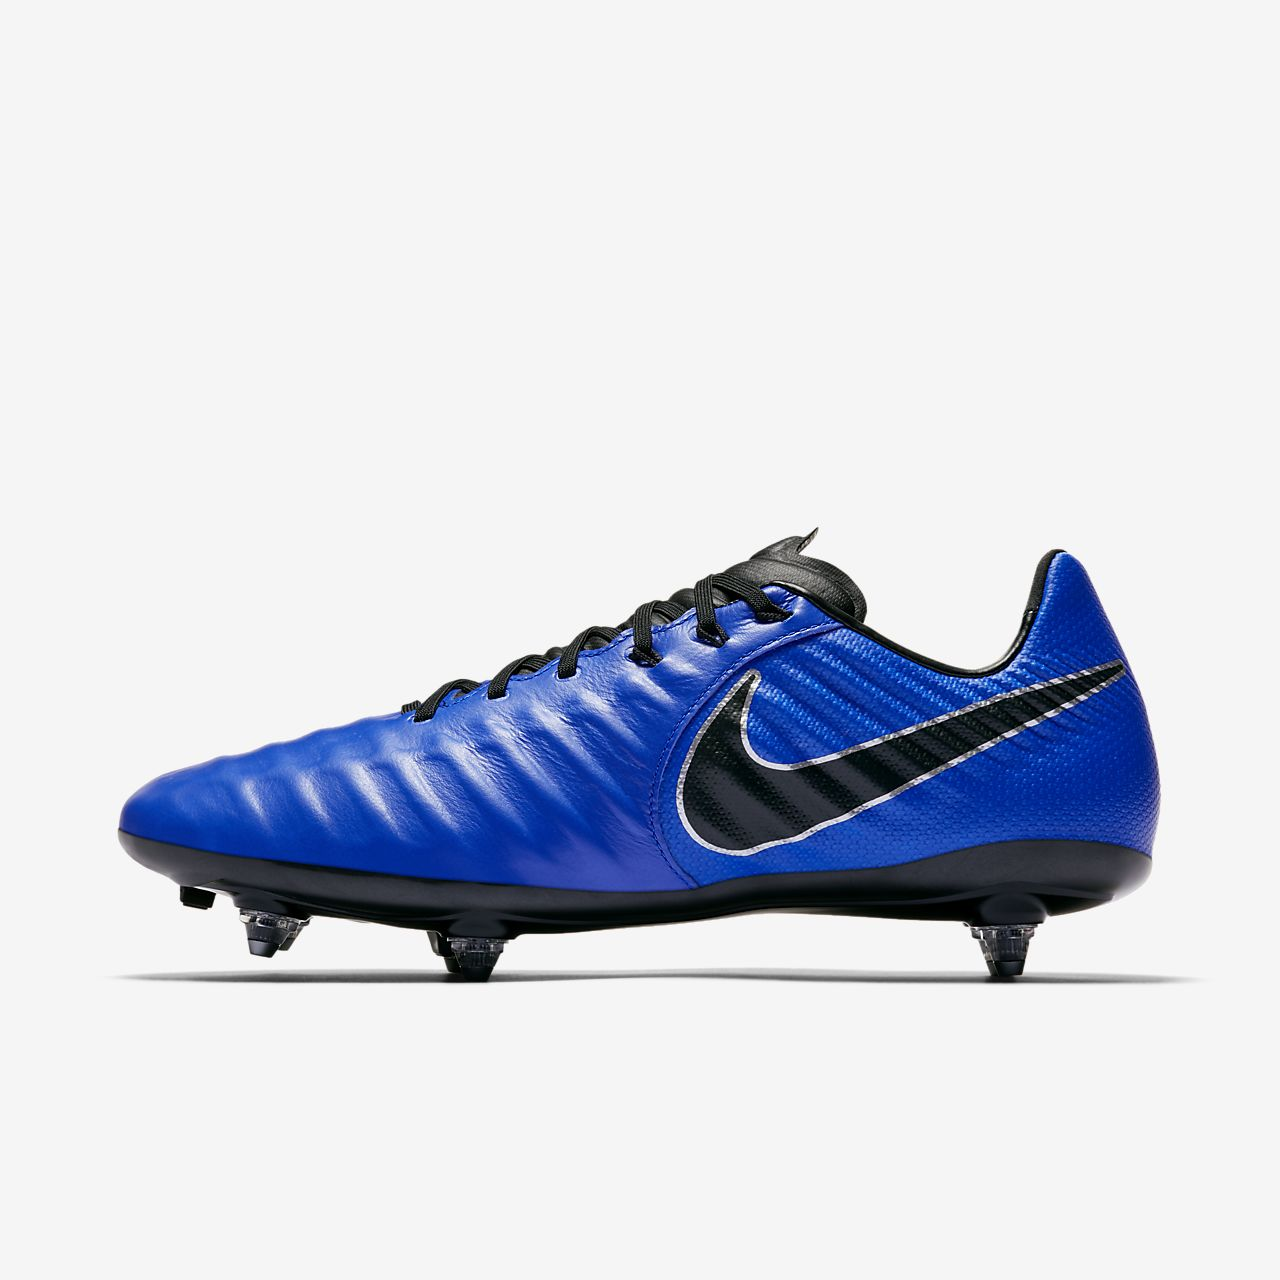 31c156383829f Nike Tiempo Legend VII Pro Soft-Ground Football Boot. Nike.com DK